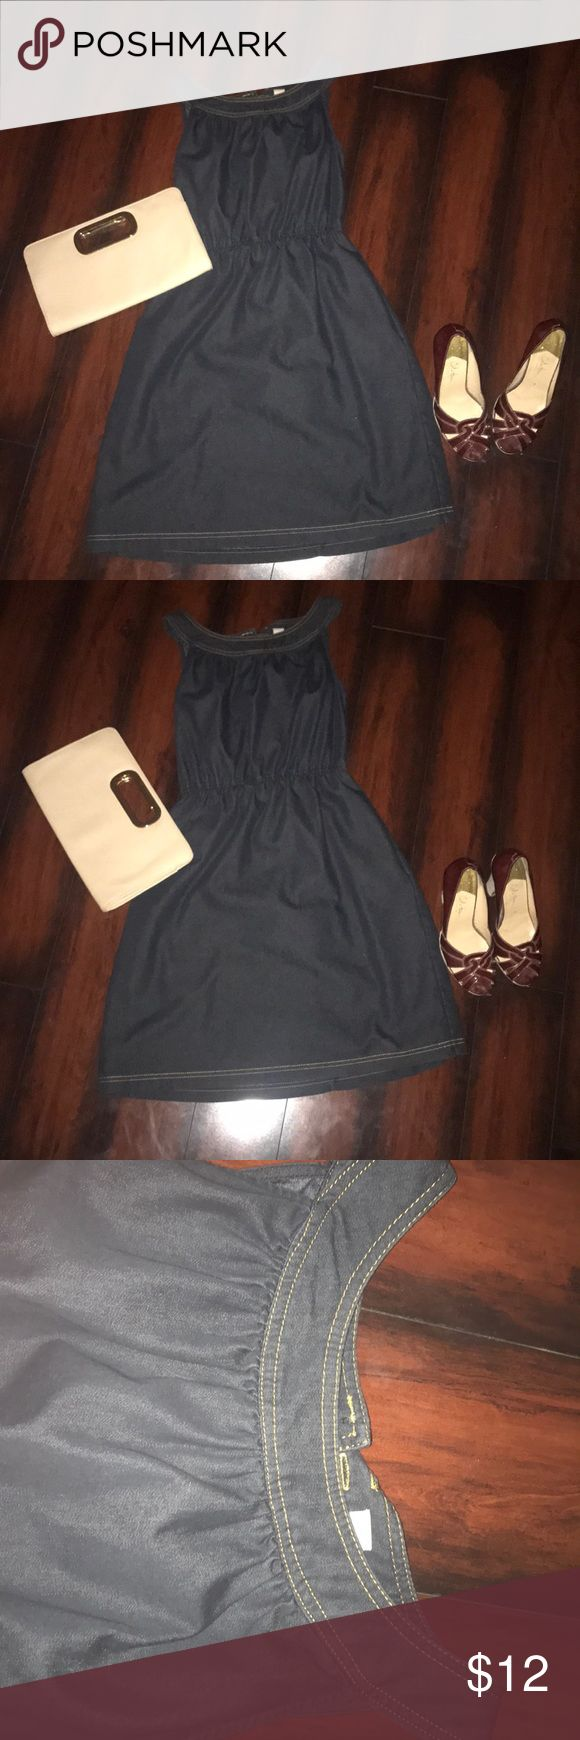 Denim Summer Dress Denim shirt summer dress. Gold buttons in the back. Pinches in the middle to show off the waste. Adorable for a date with some heels or pair it with some sandals for a more casual look. Dresses Mini